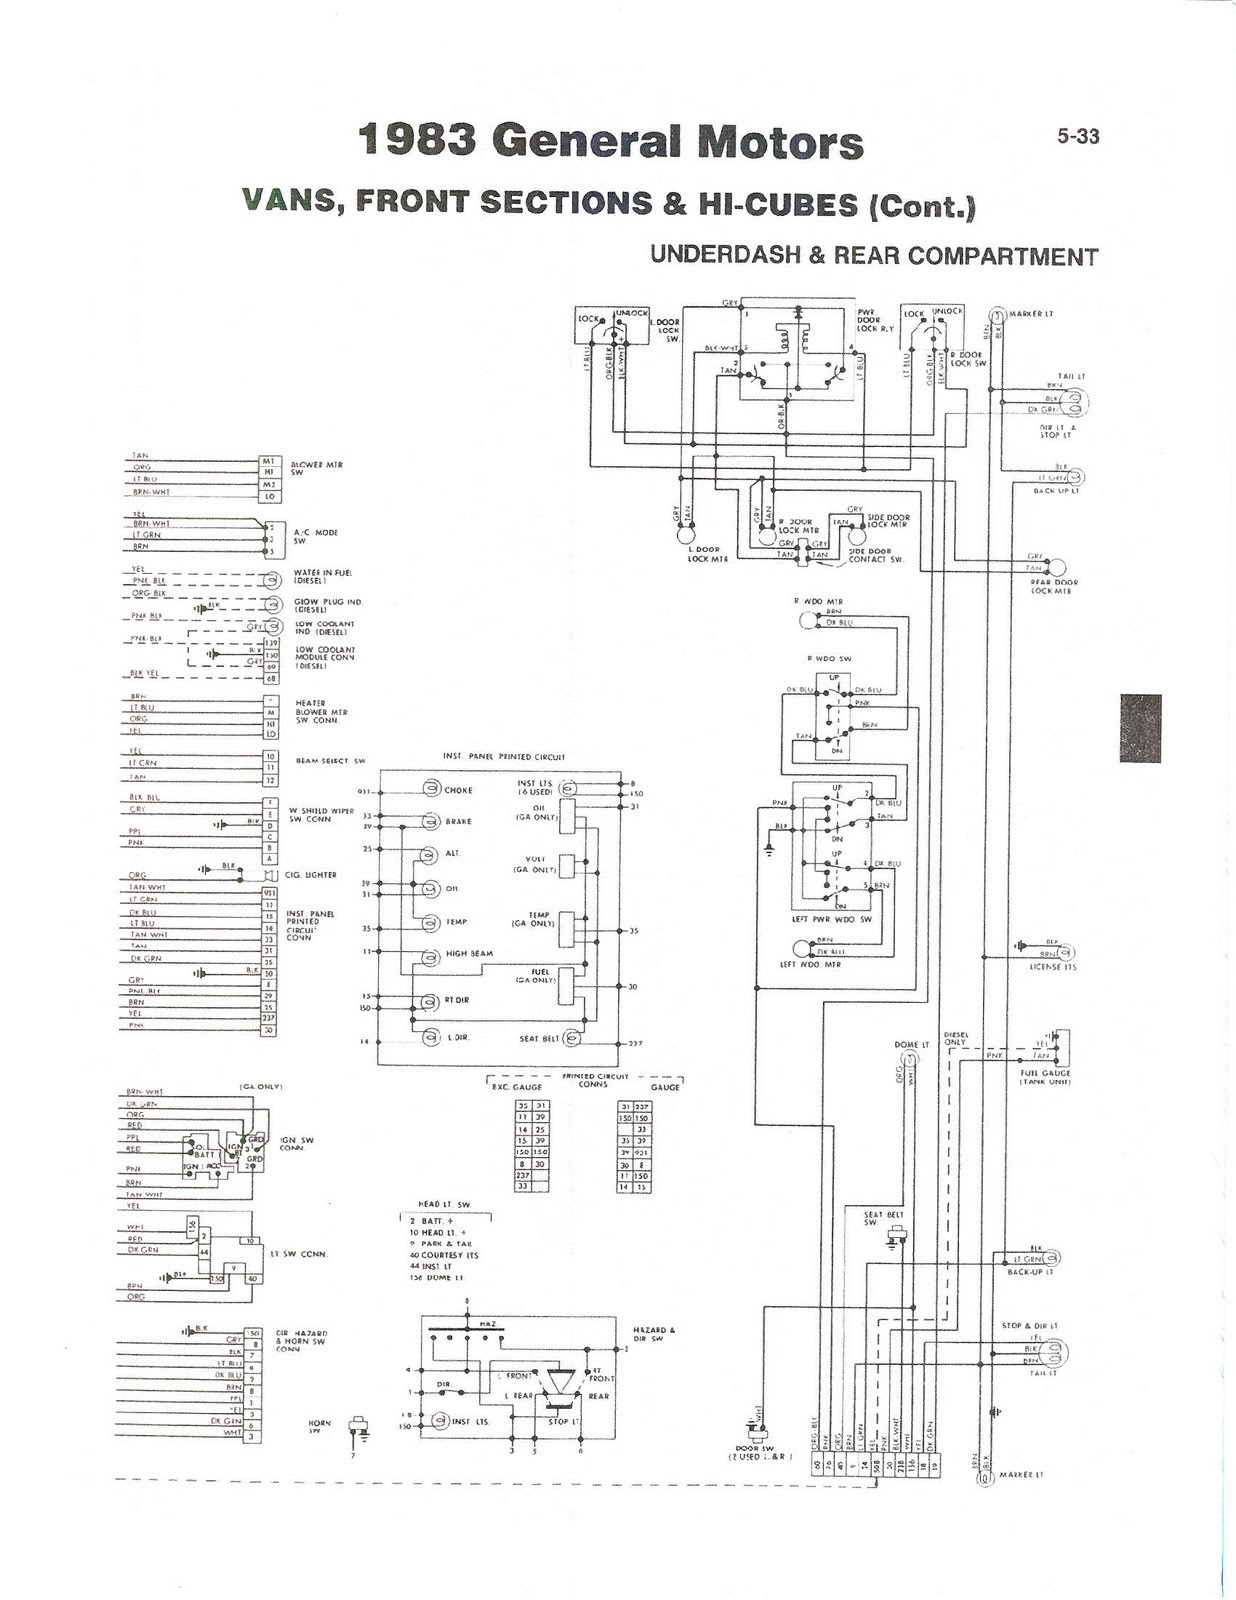 1999 fleetwood rv wiring diagram explained wiring diagrams rh sbsun co Fleetwood Discovery Motorhome Wiring Diagram Fleetwood Mobile Home Wiring Diagram